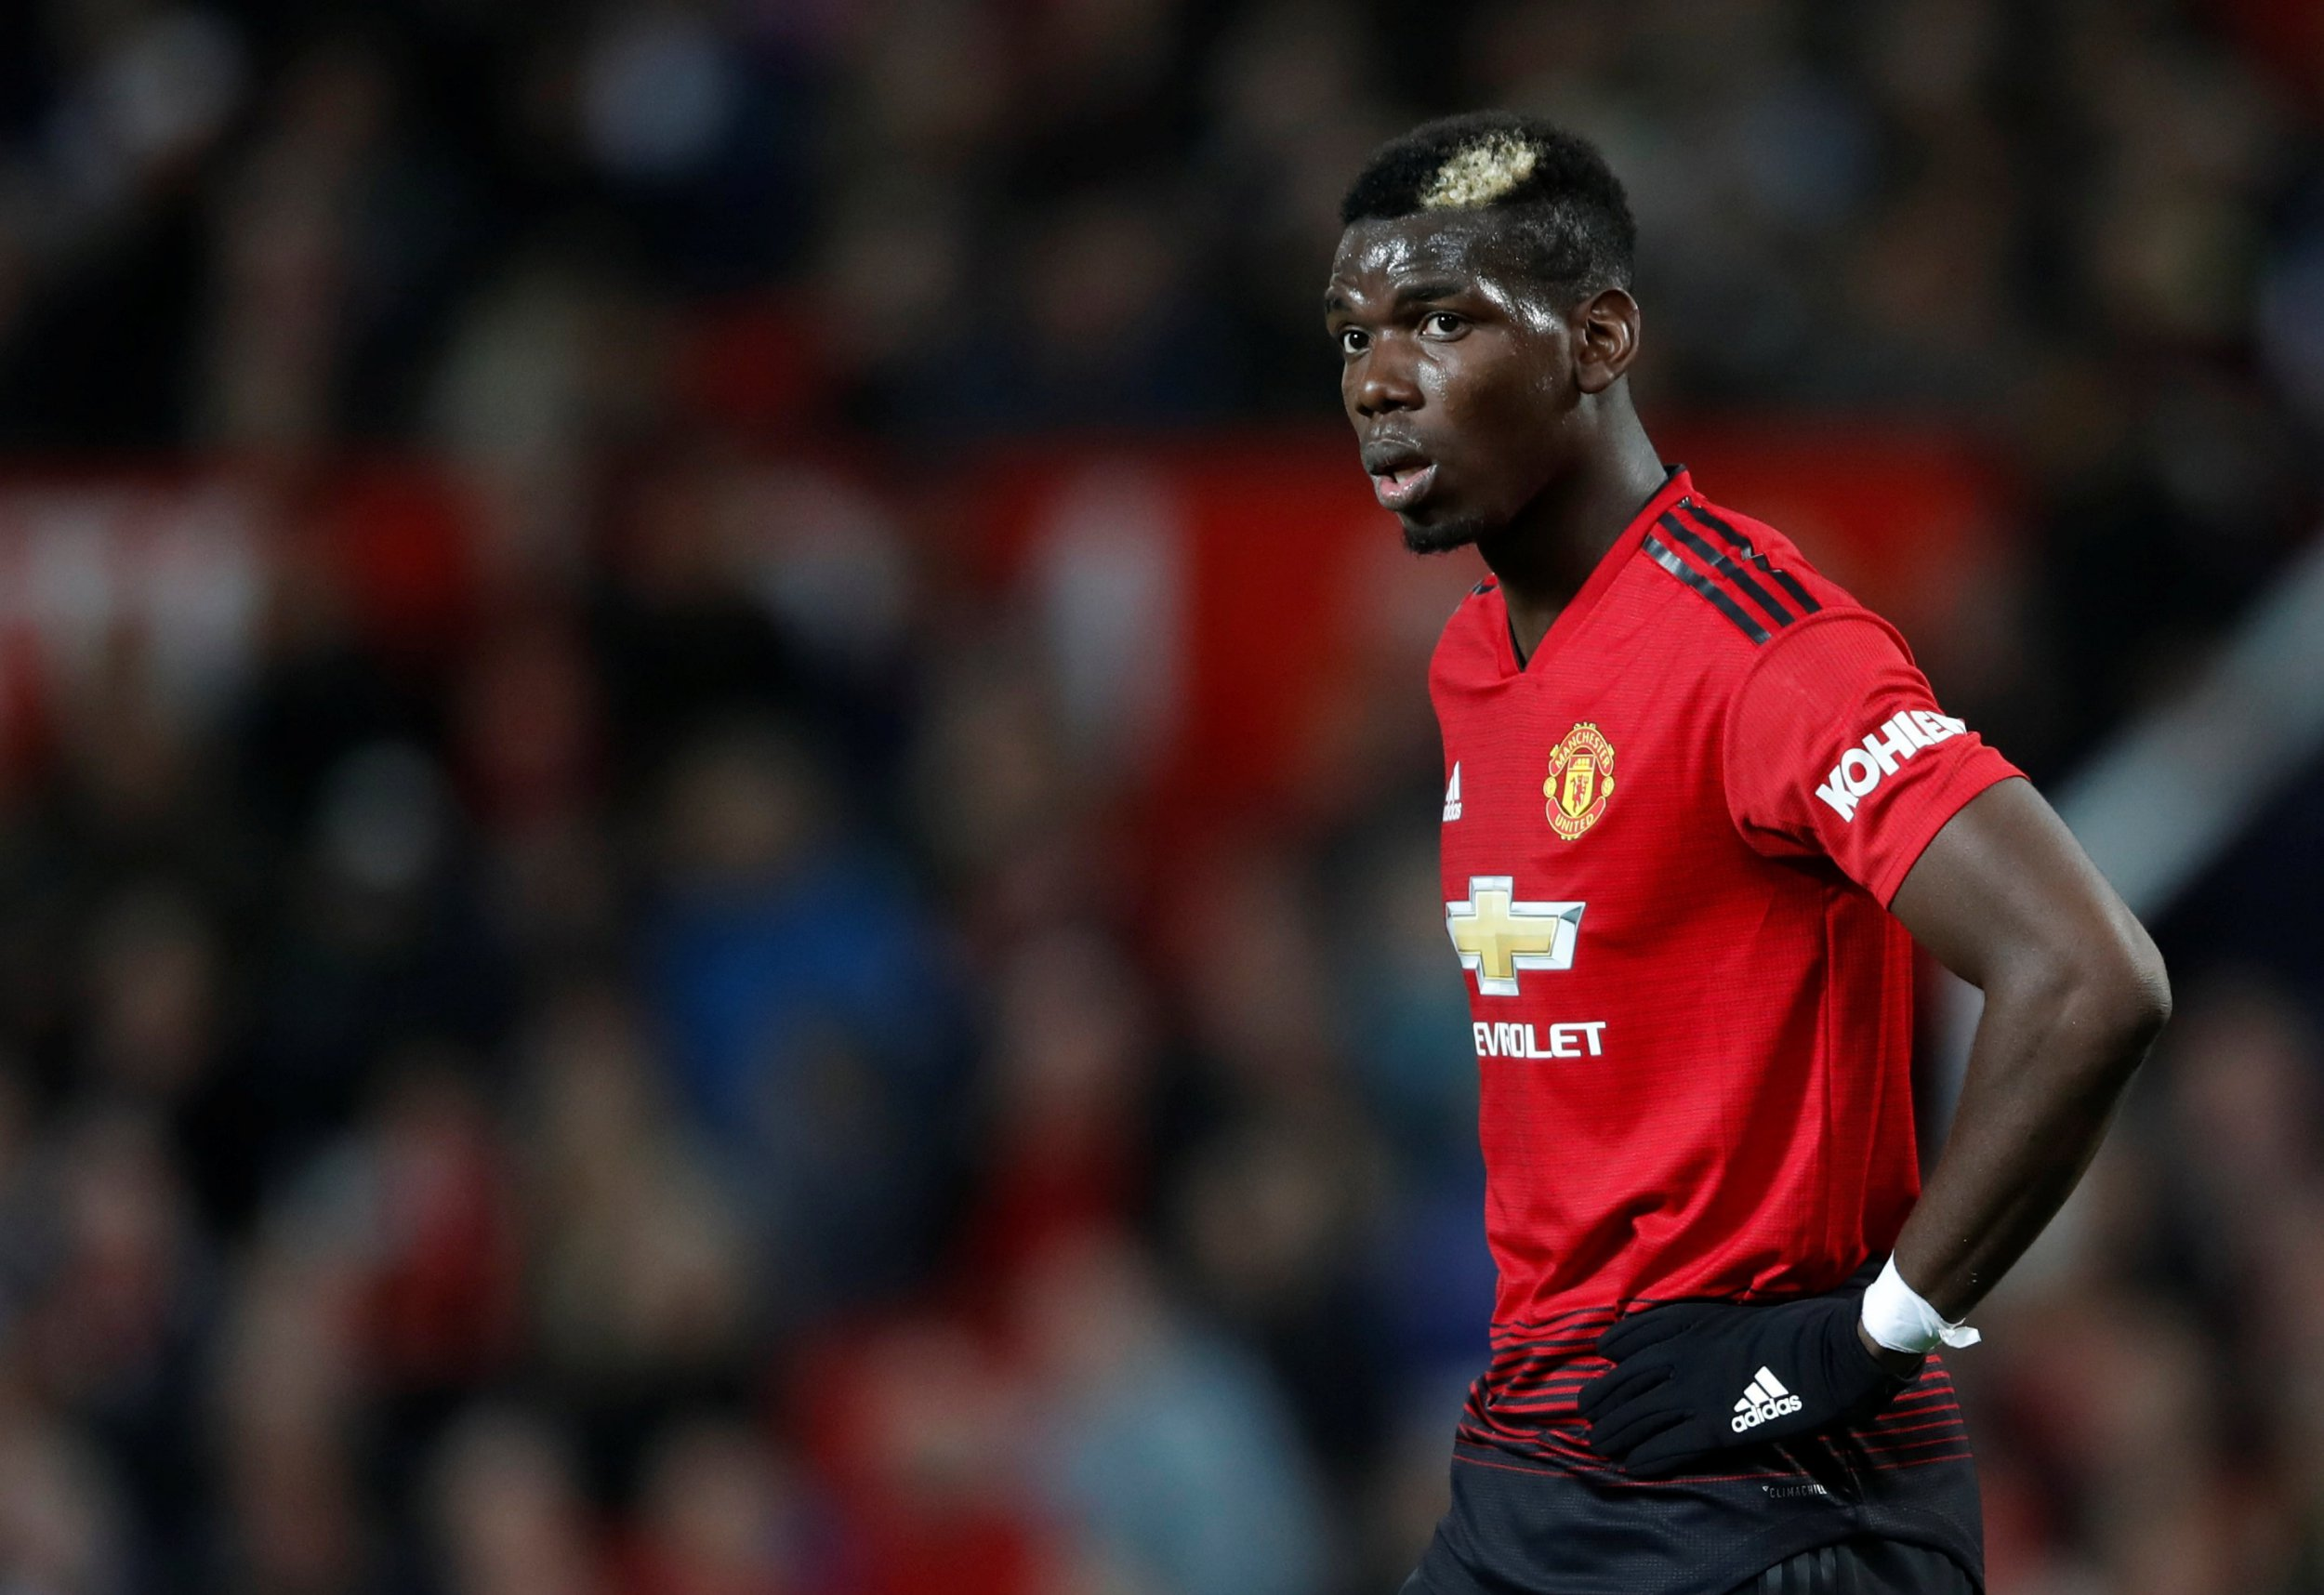 """Soccer Football - Premier League - Manchester United v Newcastle United - Old Trafford, Manchester, Britain - October 6, 2018 Manchester United's Paul Pogba during the match Action Images via Reuters/Carl Recine EDITORIAL USE ONLY. No use with unauthorized audio, video, data, fixture lists, club/league logos or """"live"""" services. Online in-match use limited to 75 images, no video emulation. No use in betting, games or single club/league/player publications. Please contact your account representative for further details."""